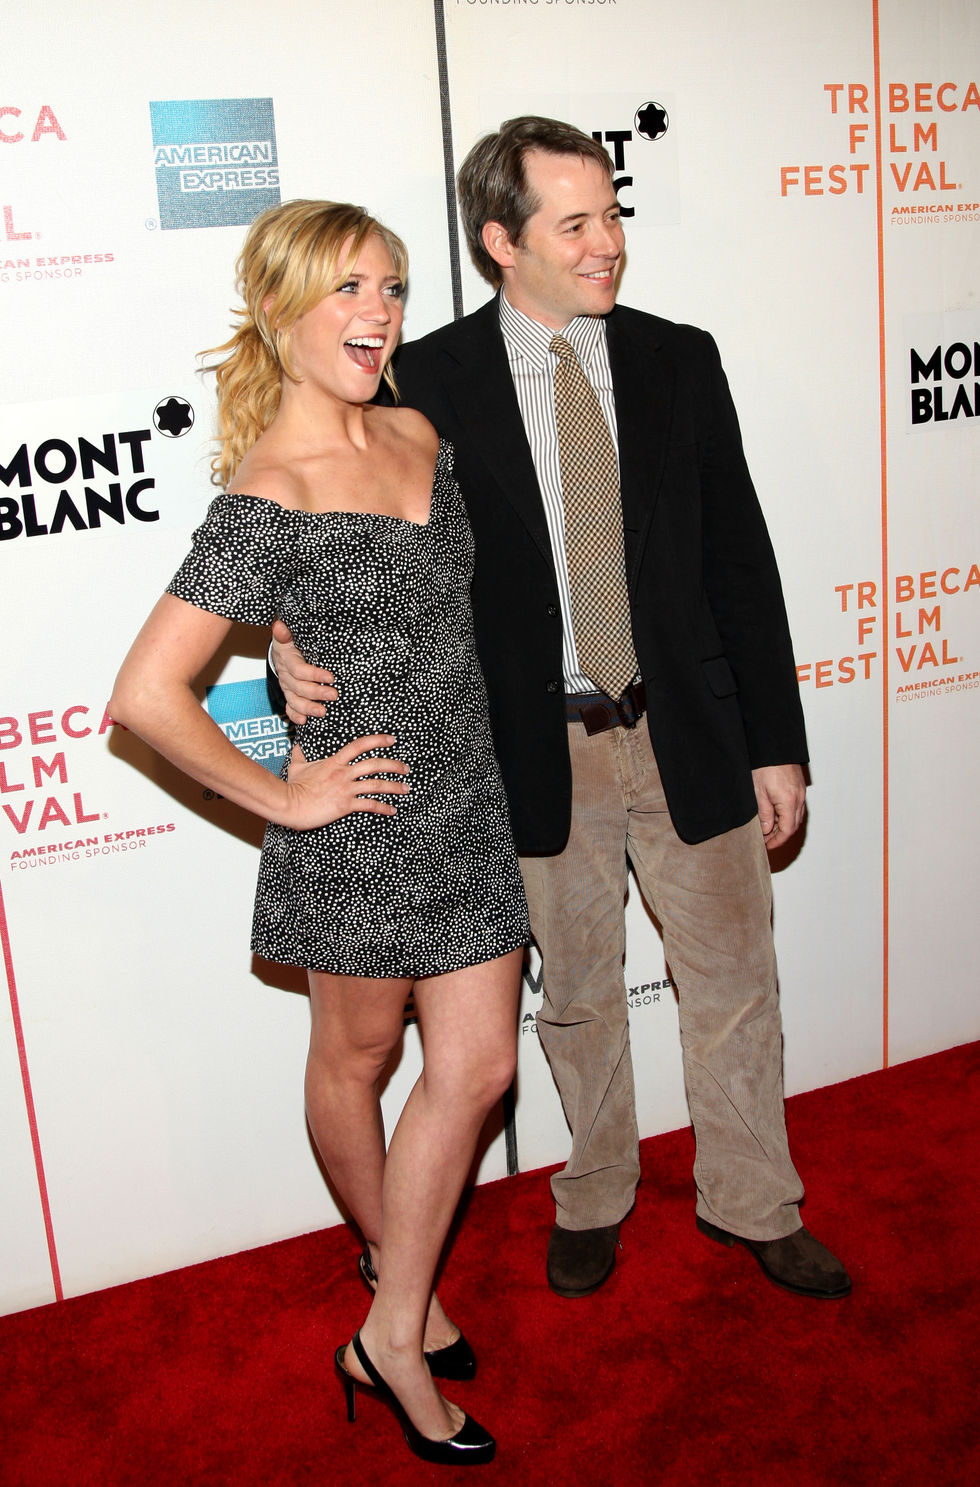 brittany-snow-finding-amanda-premiere-at-the-2008-tribeca-film-festival-01